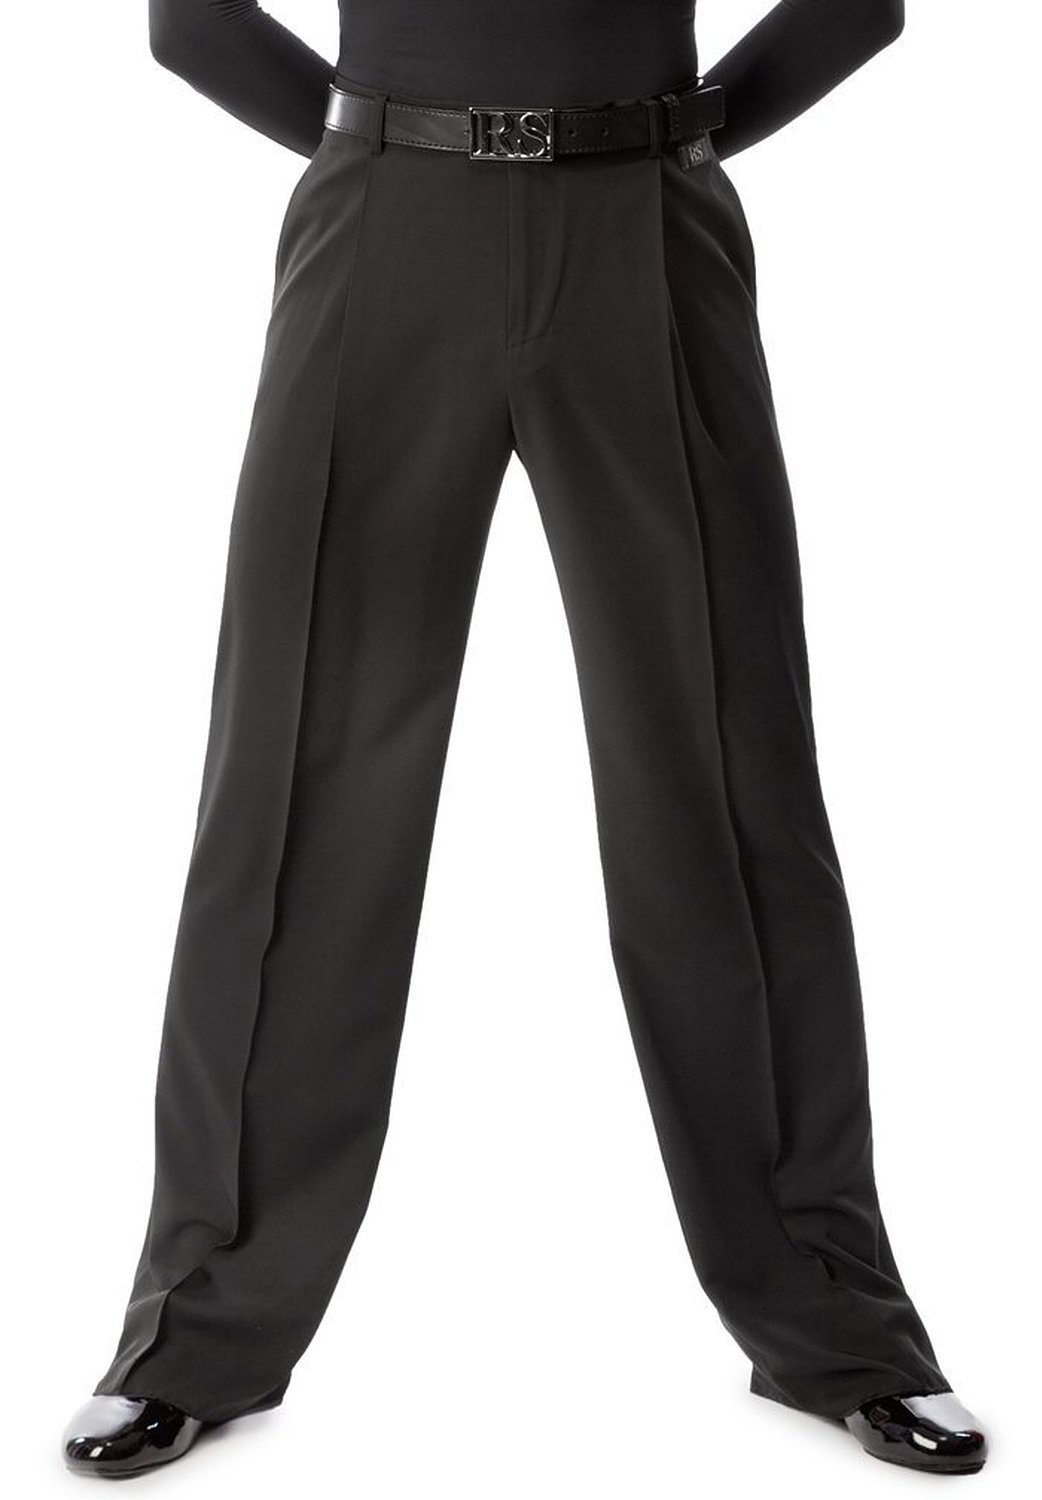 RS Atelier Mens Carlo Smooth Dance Trousers (50(34.5 inches)) by RS Atelier